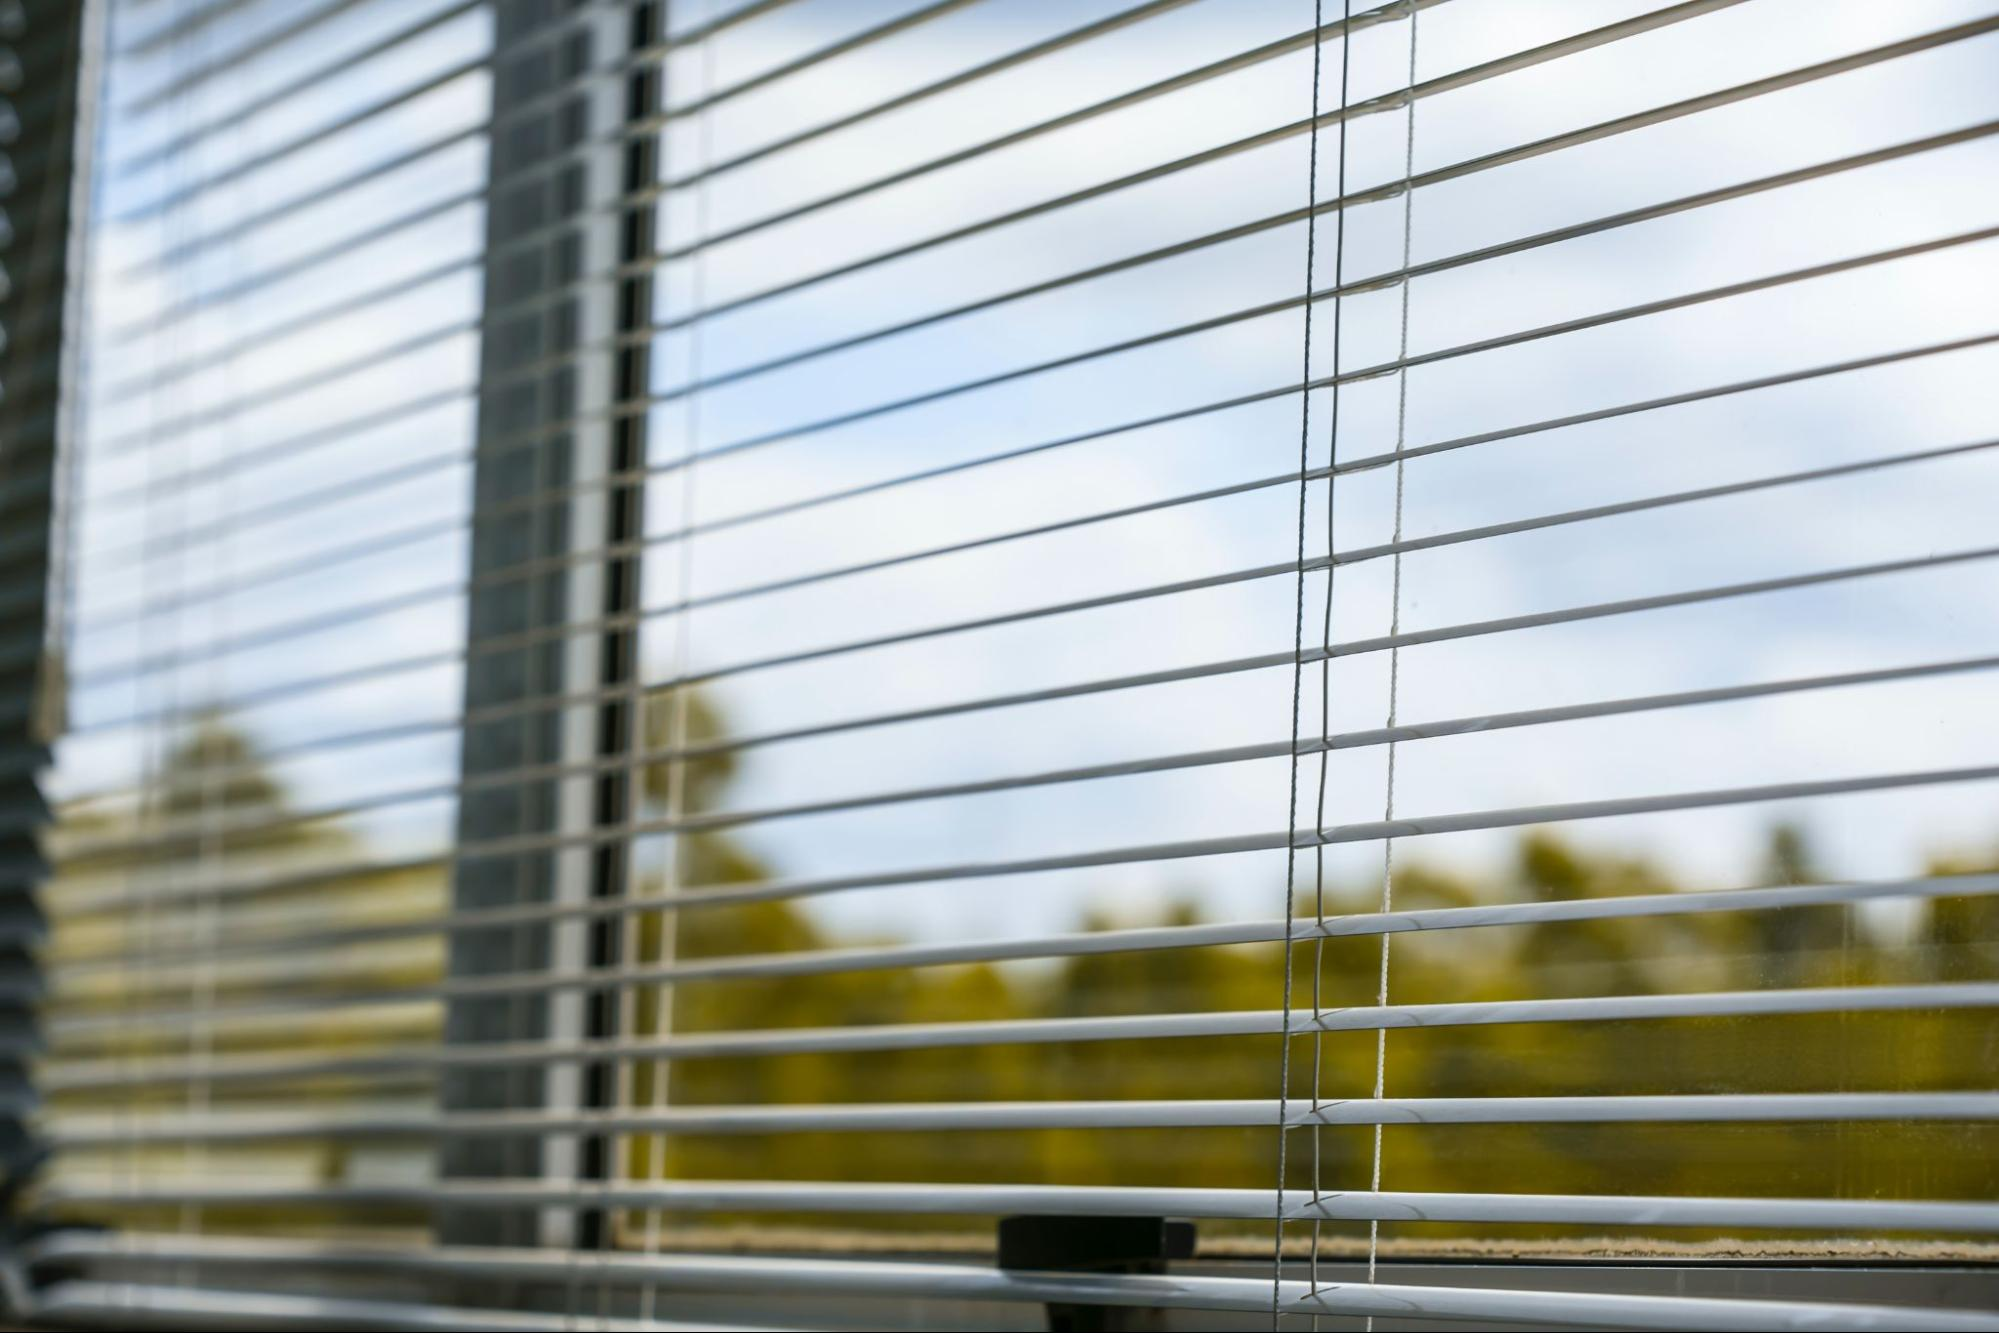 Why Hire Window Cleaners? The Benefits of Better Looking Windows